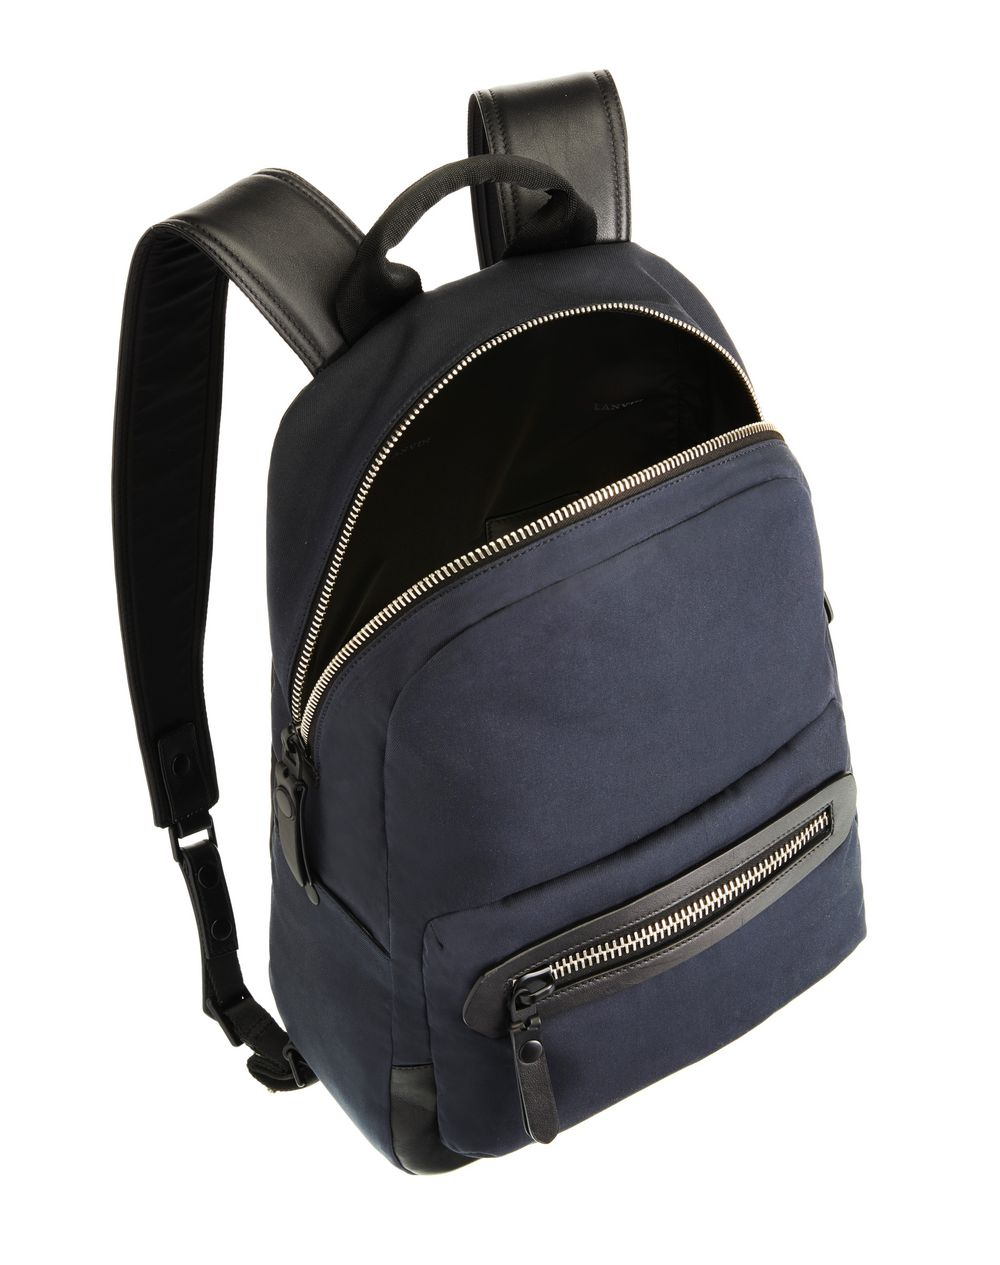 COTTON ZIPPED BACKPACK  - Lanvin